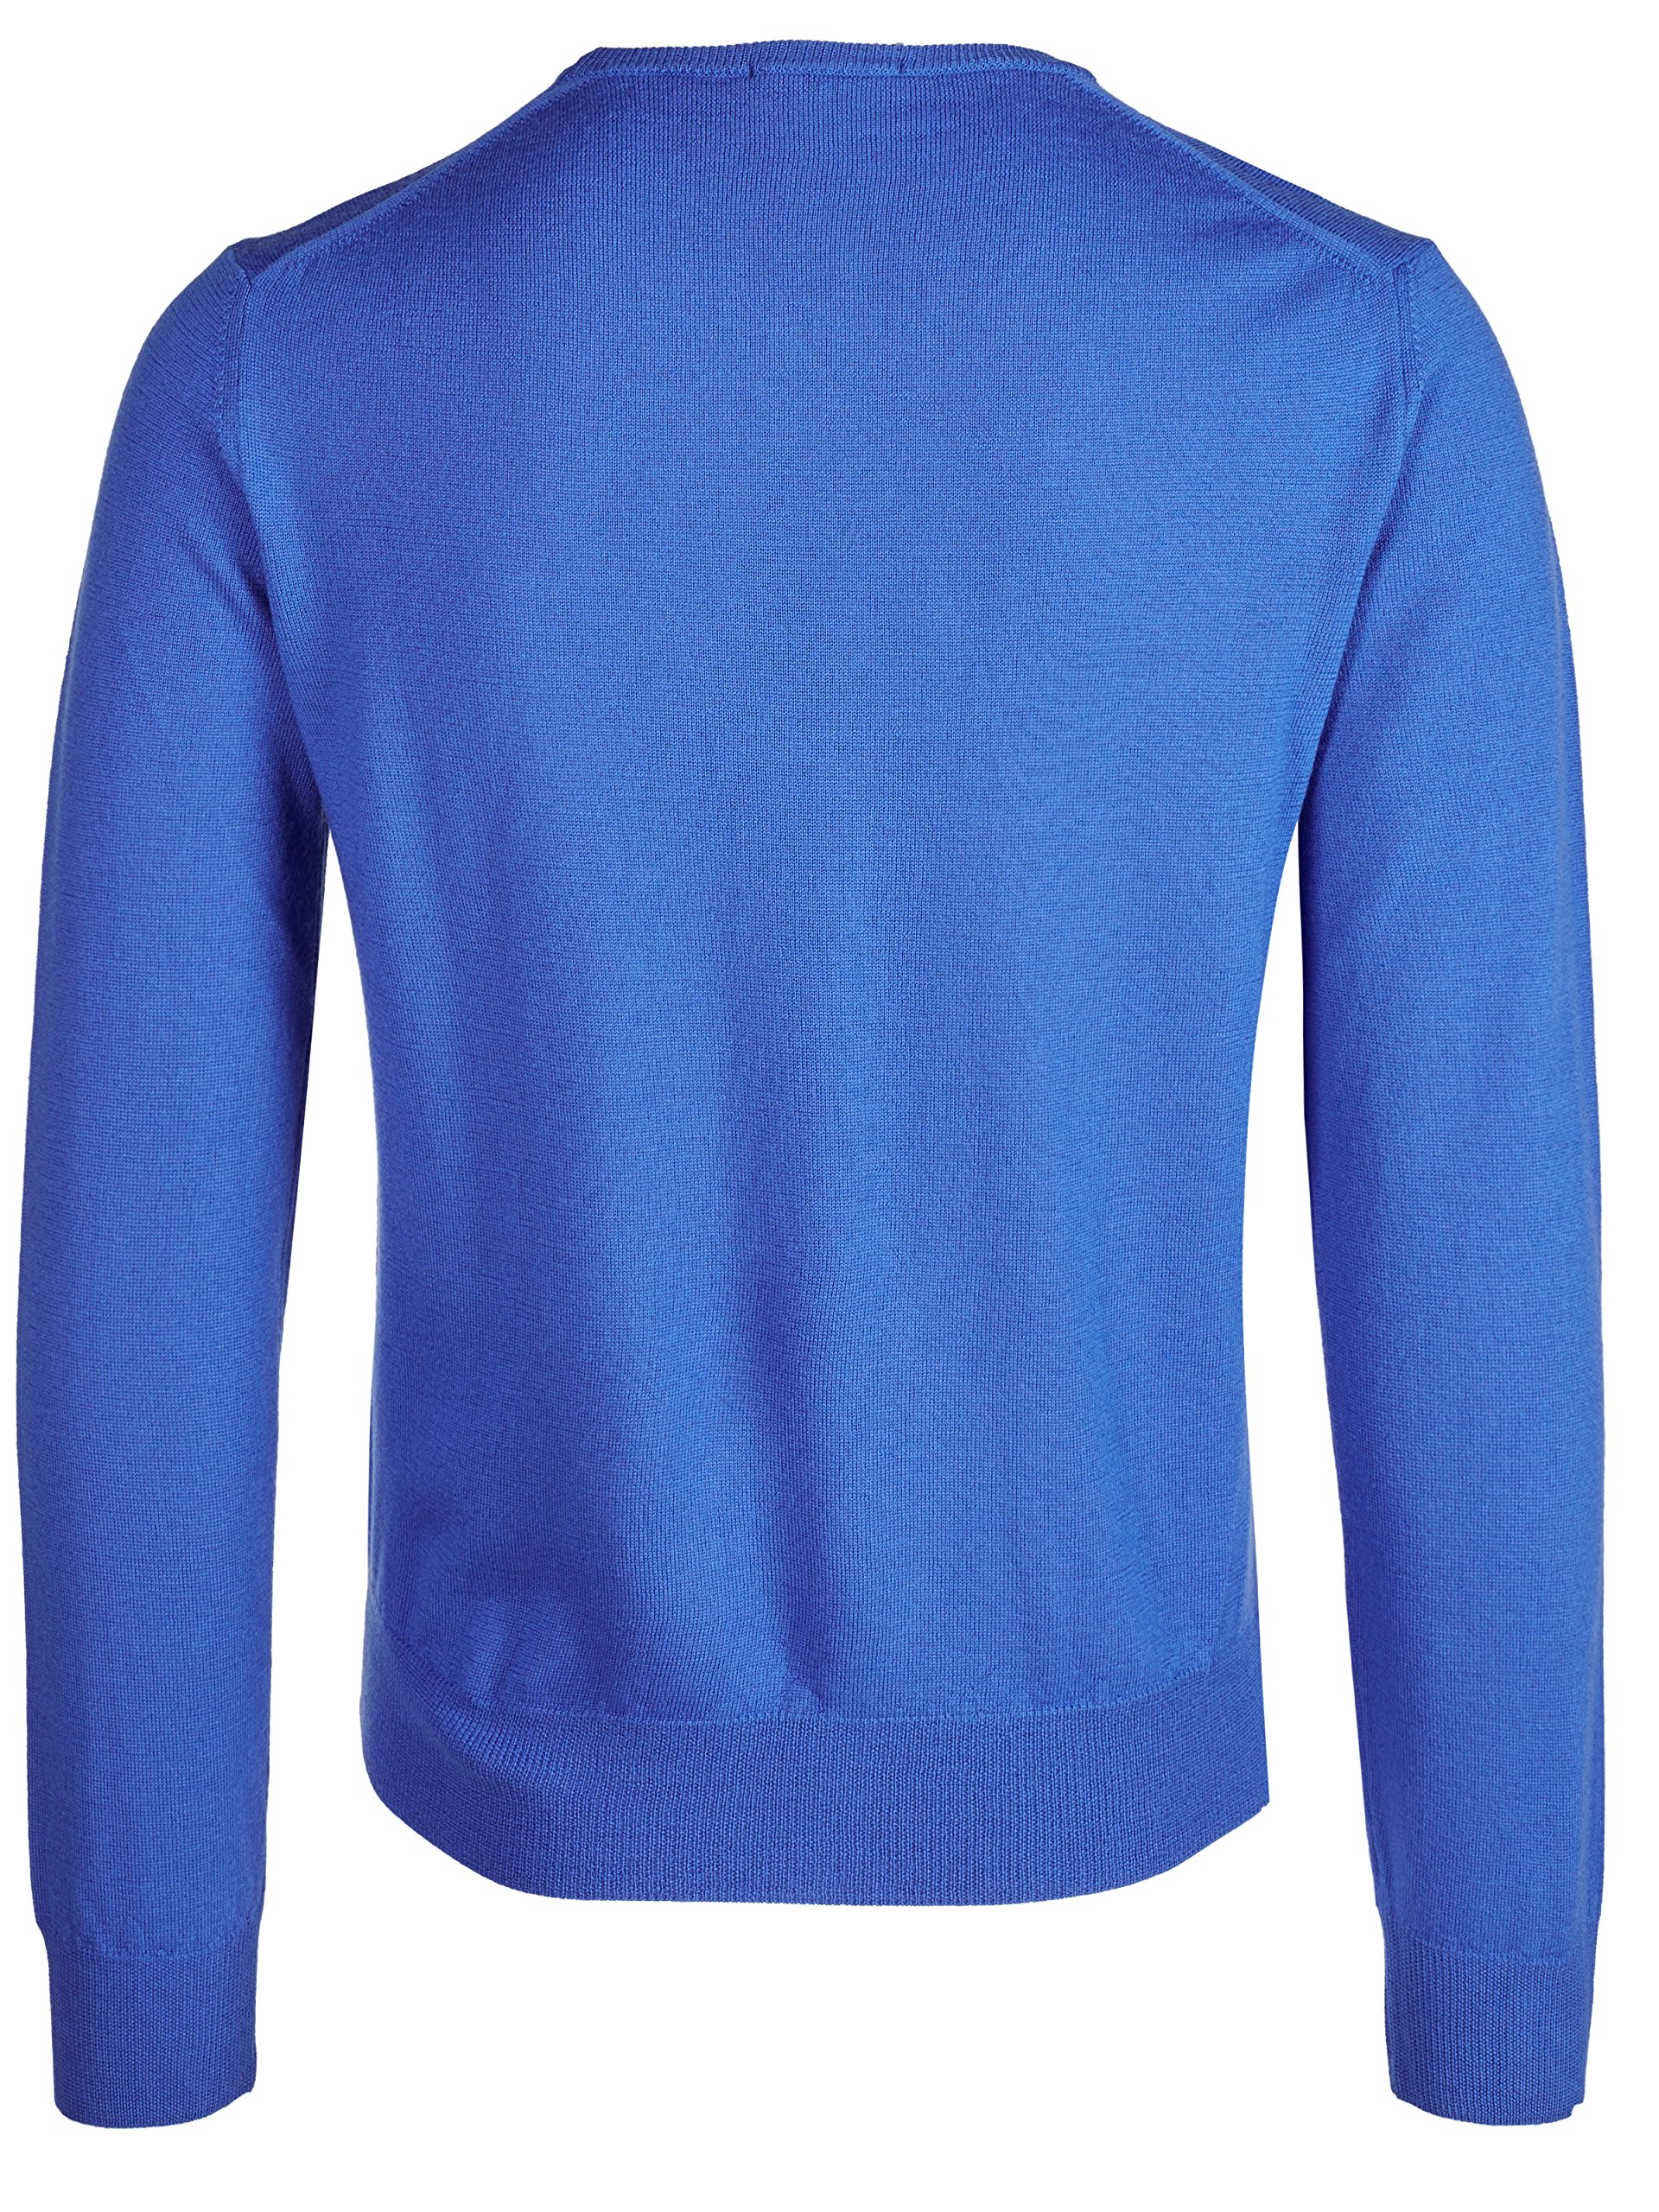 Versace Collection Medium Blue V-neck Wool Sweater (S) by Versace (Image #2)